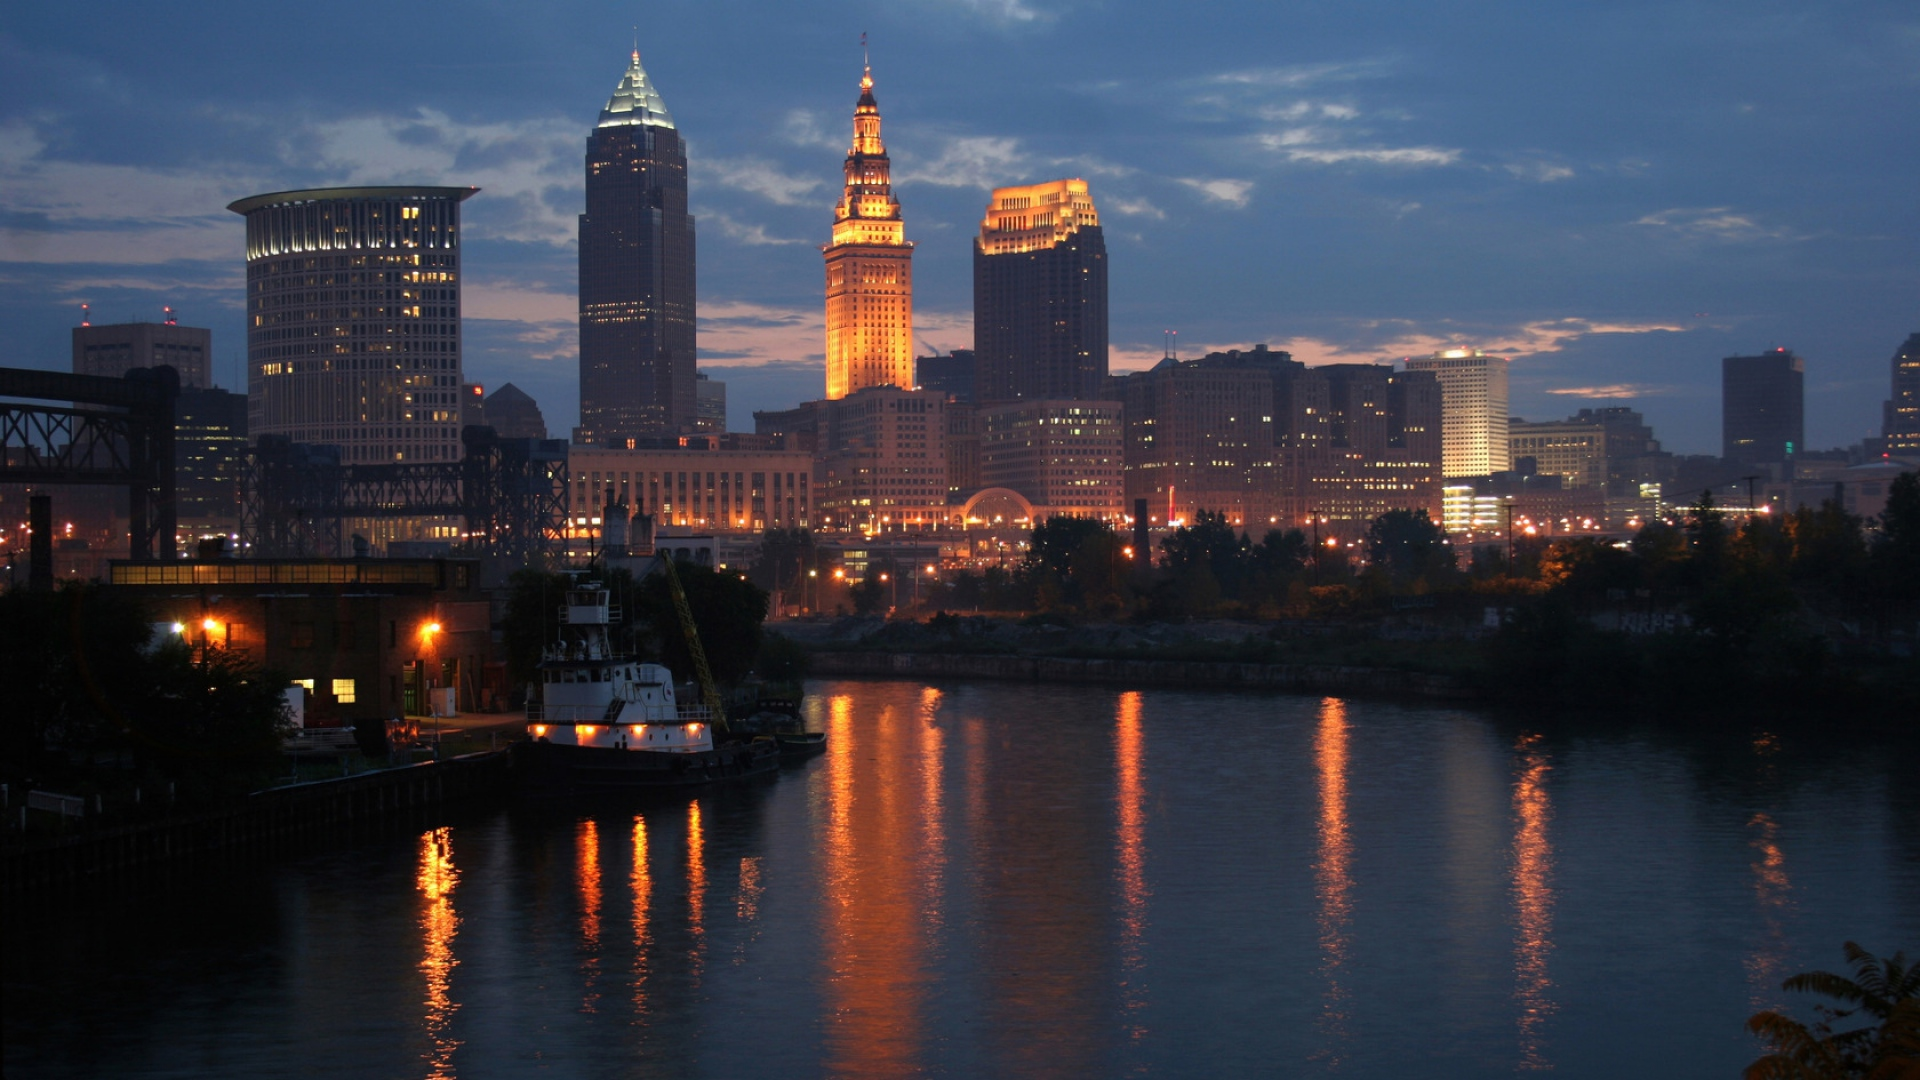 downtown cleveland ohio wallpaper - photo #23